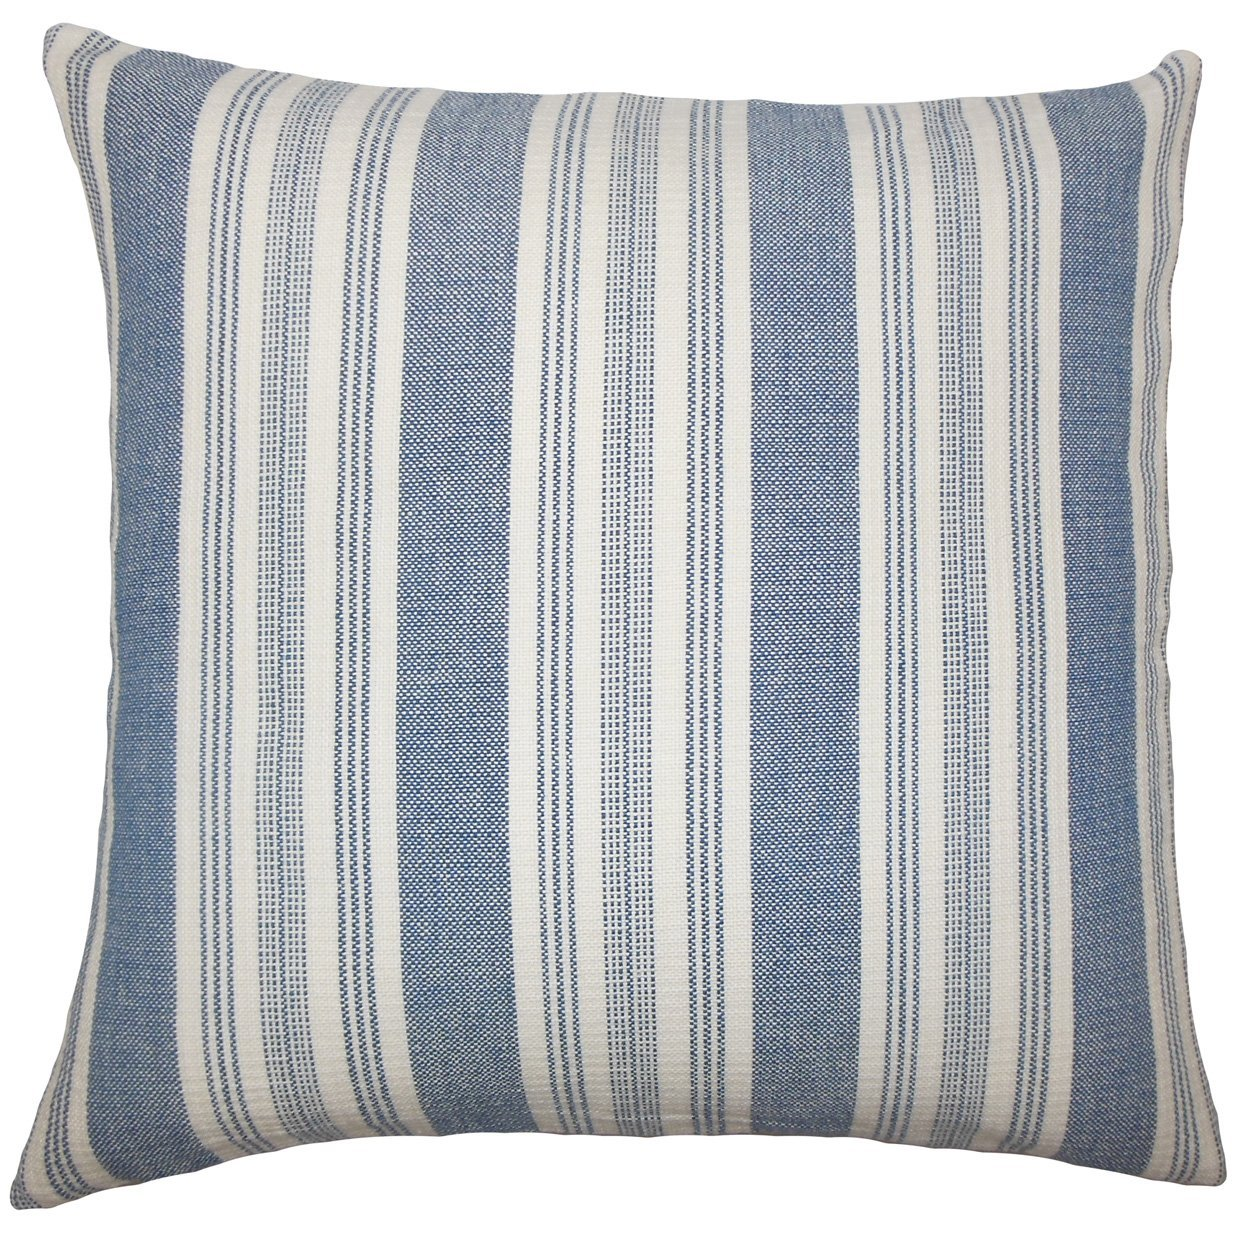 The Pillow Collection EURO-D-32805-DENIM-C100 Reiki Striped Bedding Sham, Euro/26'' x 26'', Denim